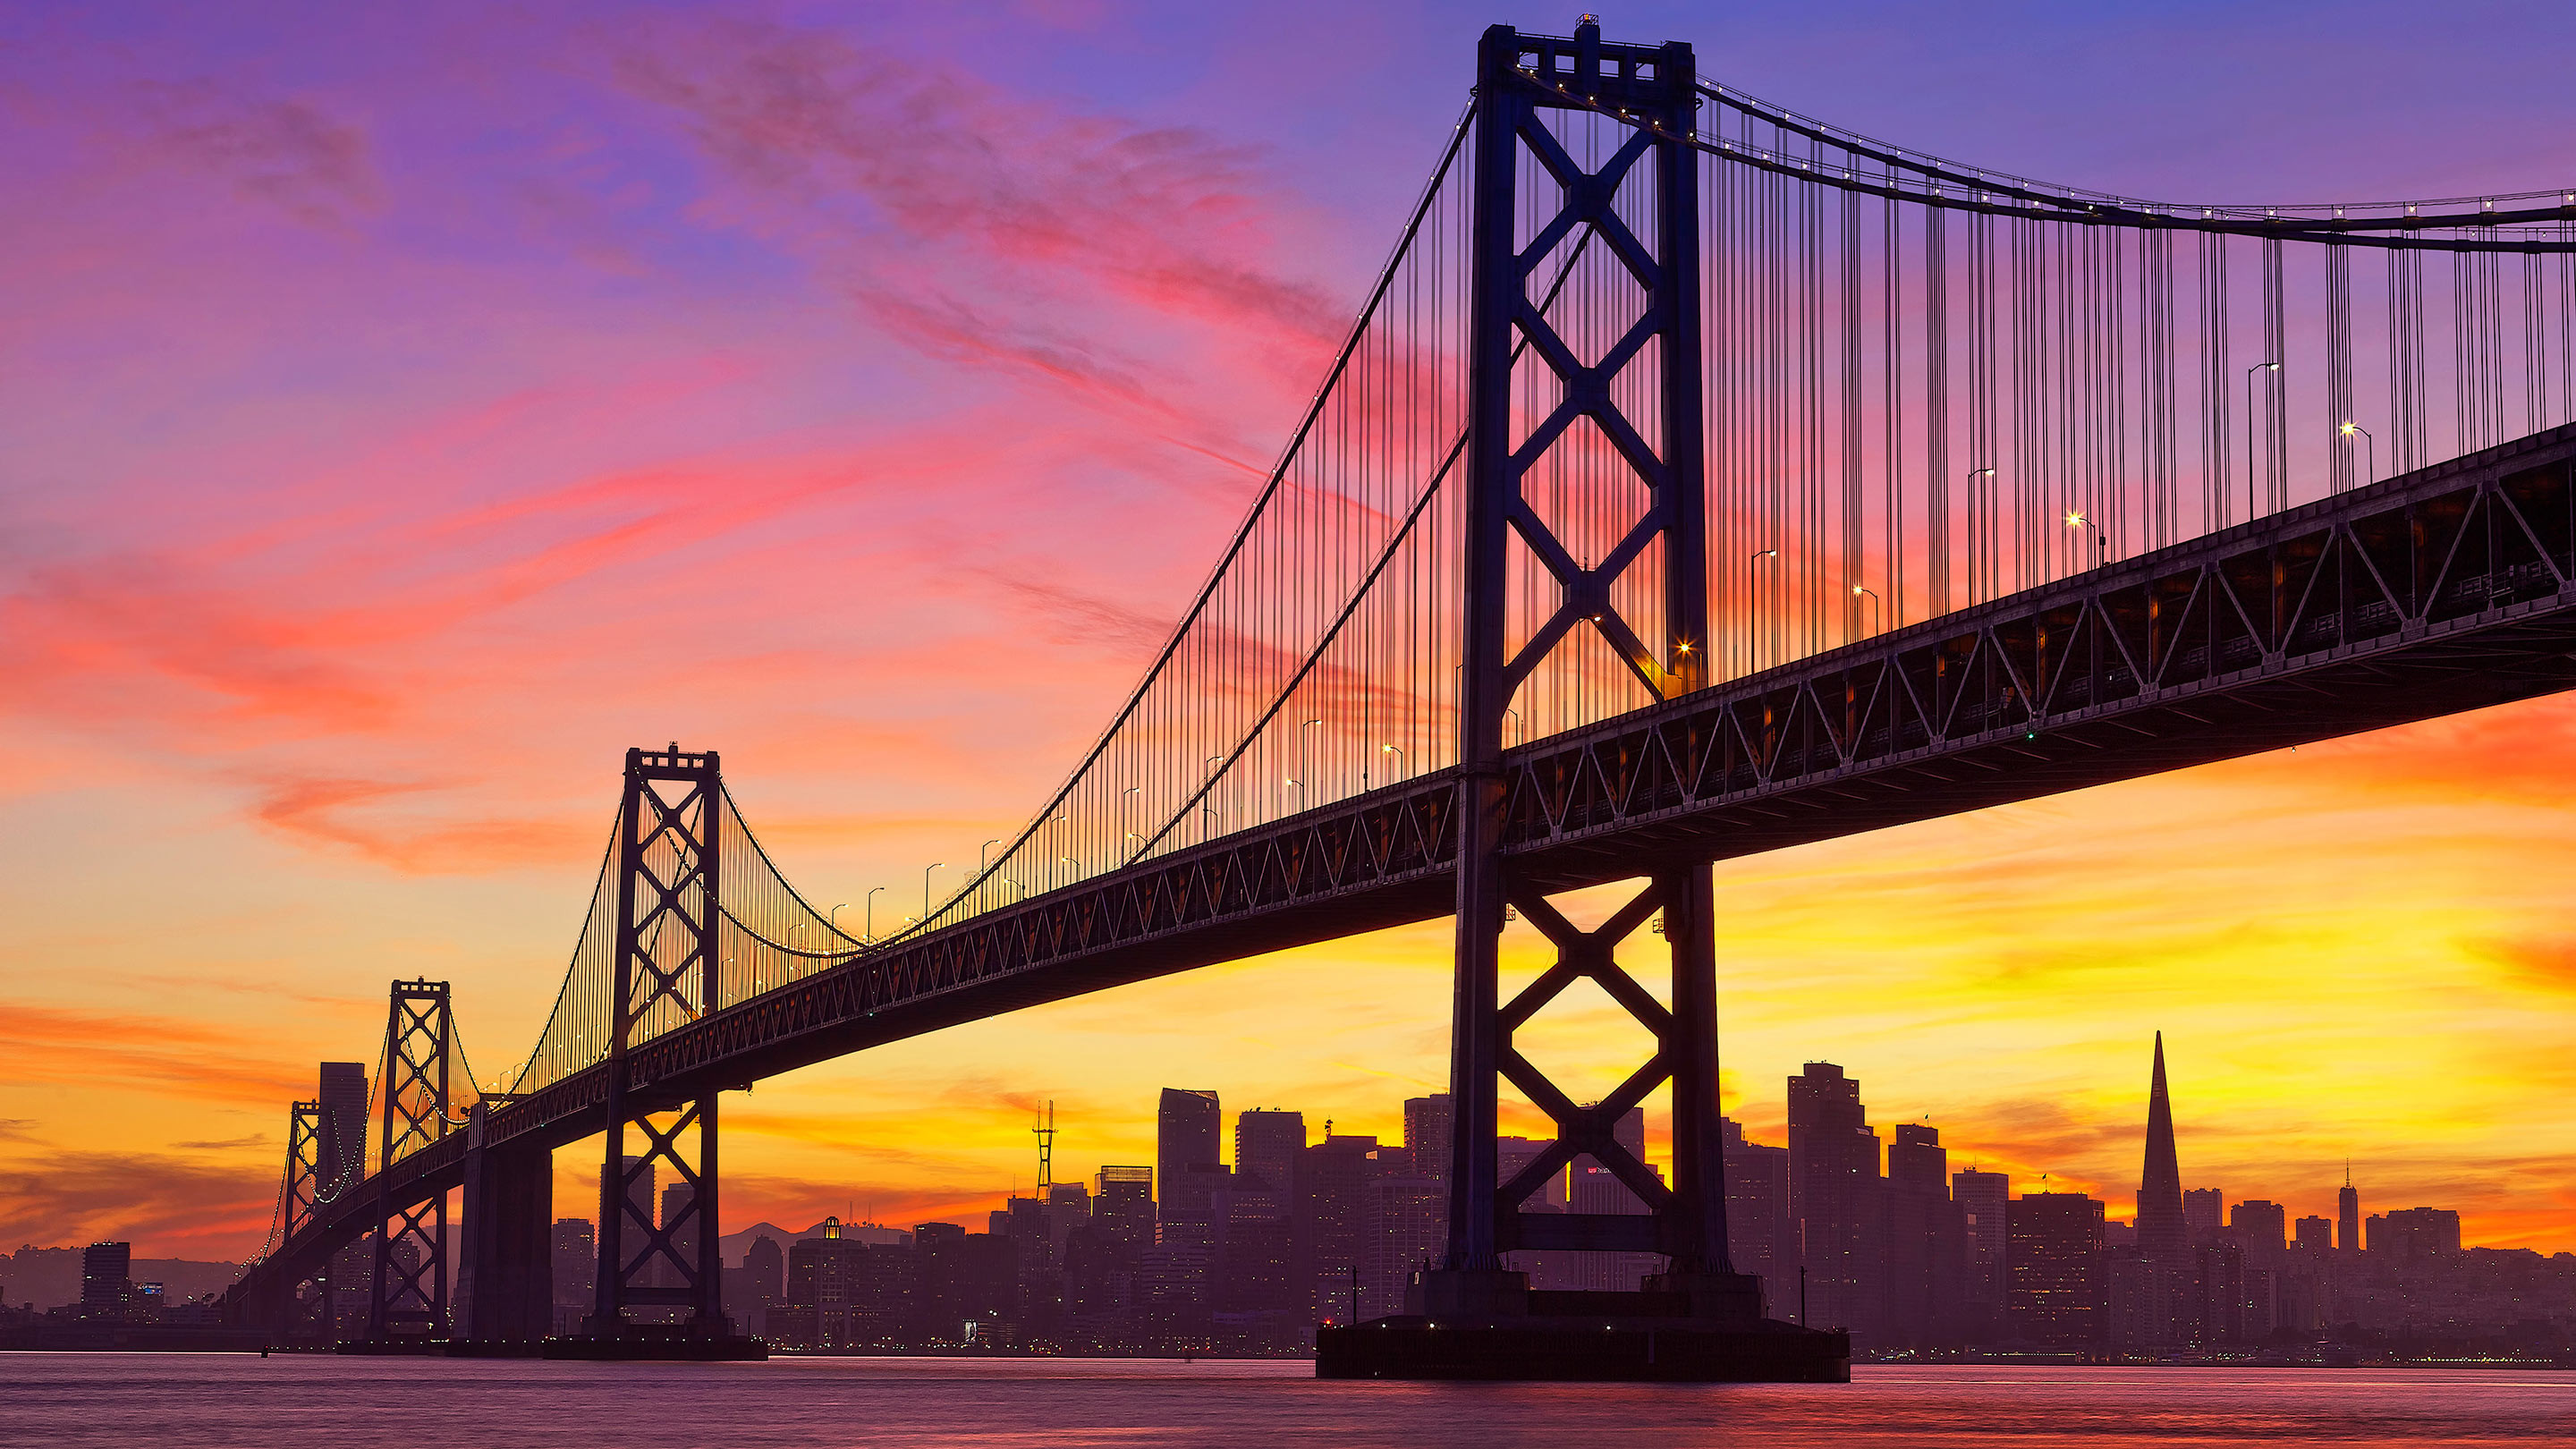 Best ideas about San Francisco Landscape . Save or Pin Fine Art Limited Edition Print Wall Corporate Decoration Now.